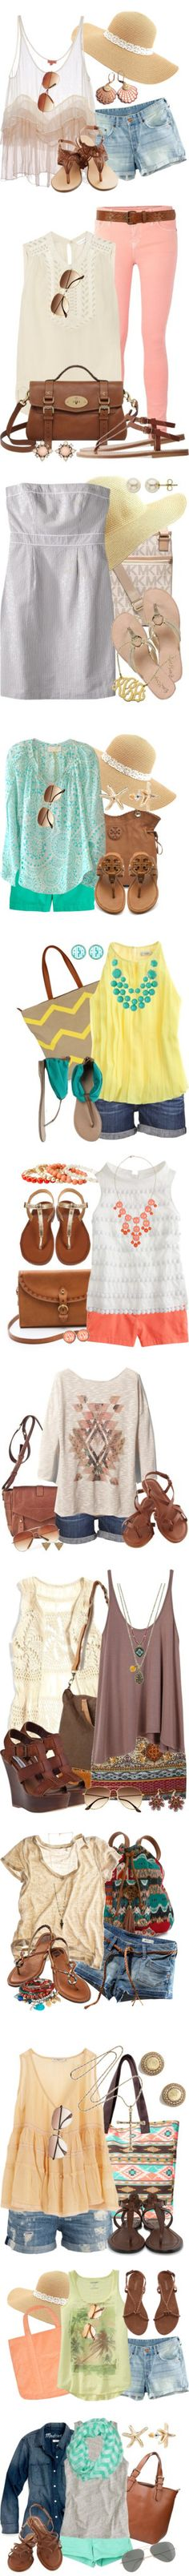 Summer Showcase by qtpiekelso on Polyvore featuring H&M, Charlotte Russe, Chan Luu, MANGO, Rosita Bonita, Jack Wills, Étoile Isabel Marant, Mulberry, K. Jacques and Warehouse